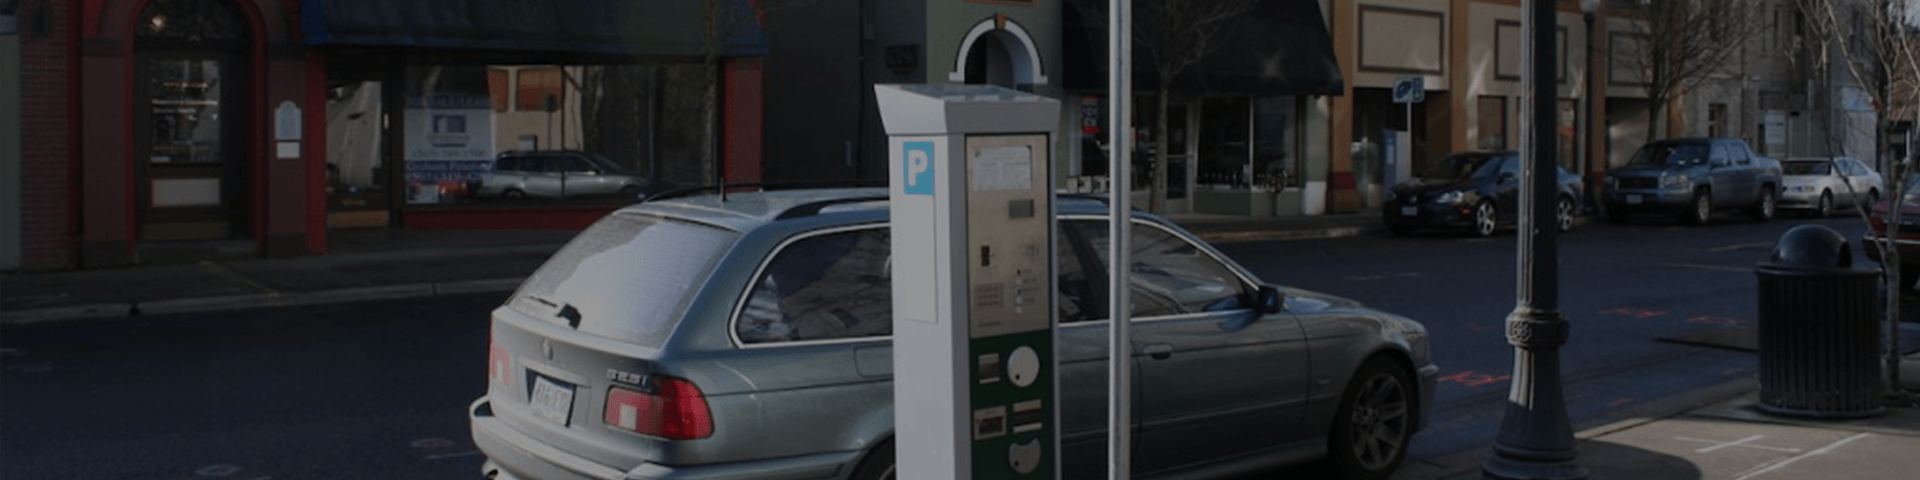 VenTek International On Street Digital Parking Meter